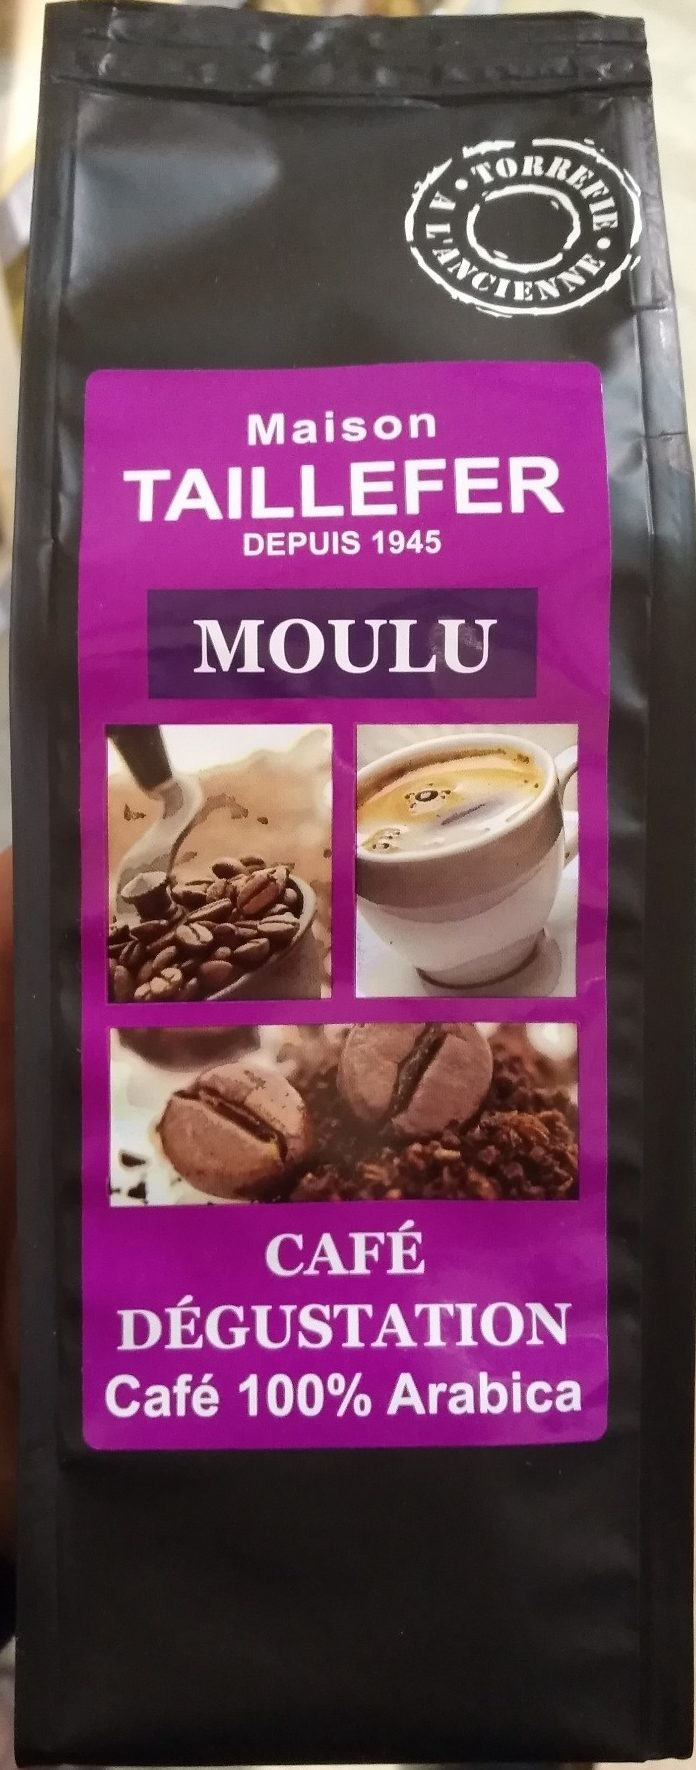 Café Dégustation Moulu 100% Arabica - Product